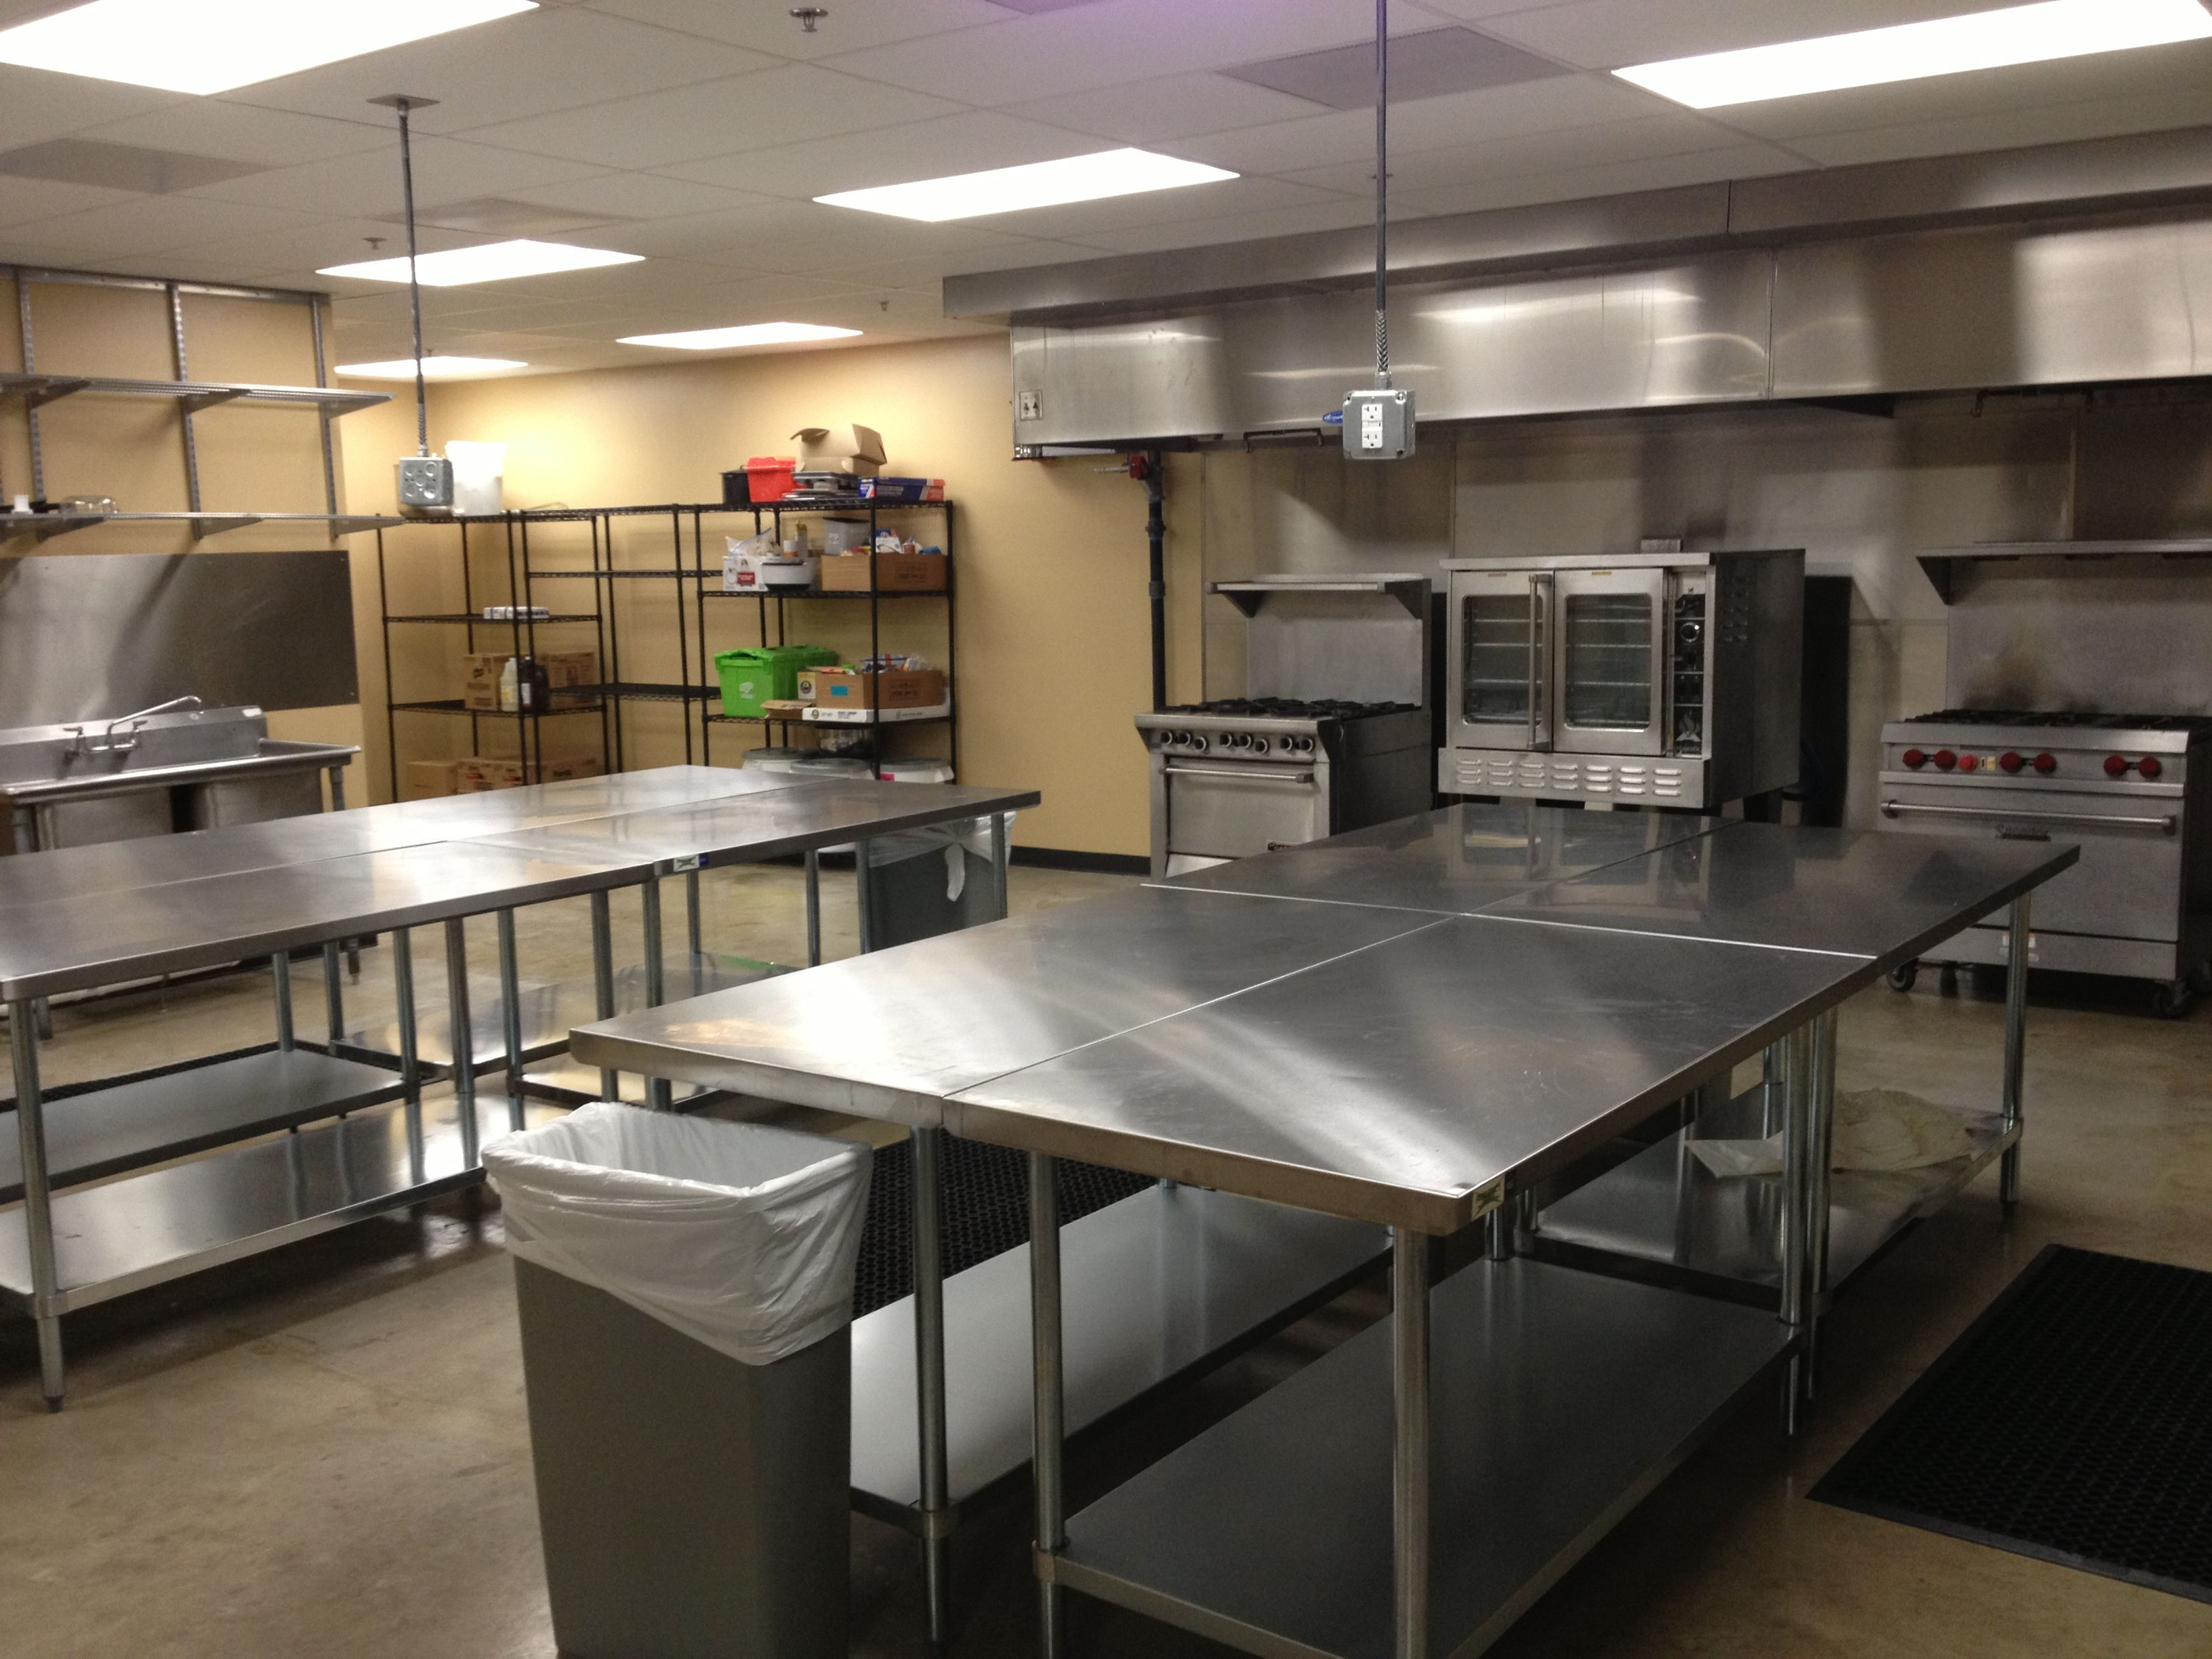 local commercial kitchen space available 20 hr  catering